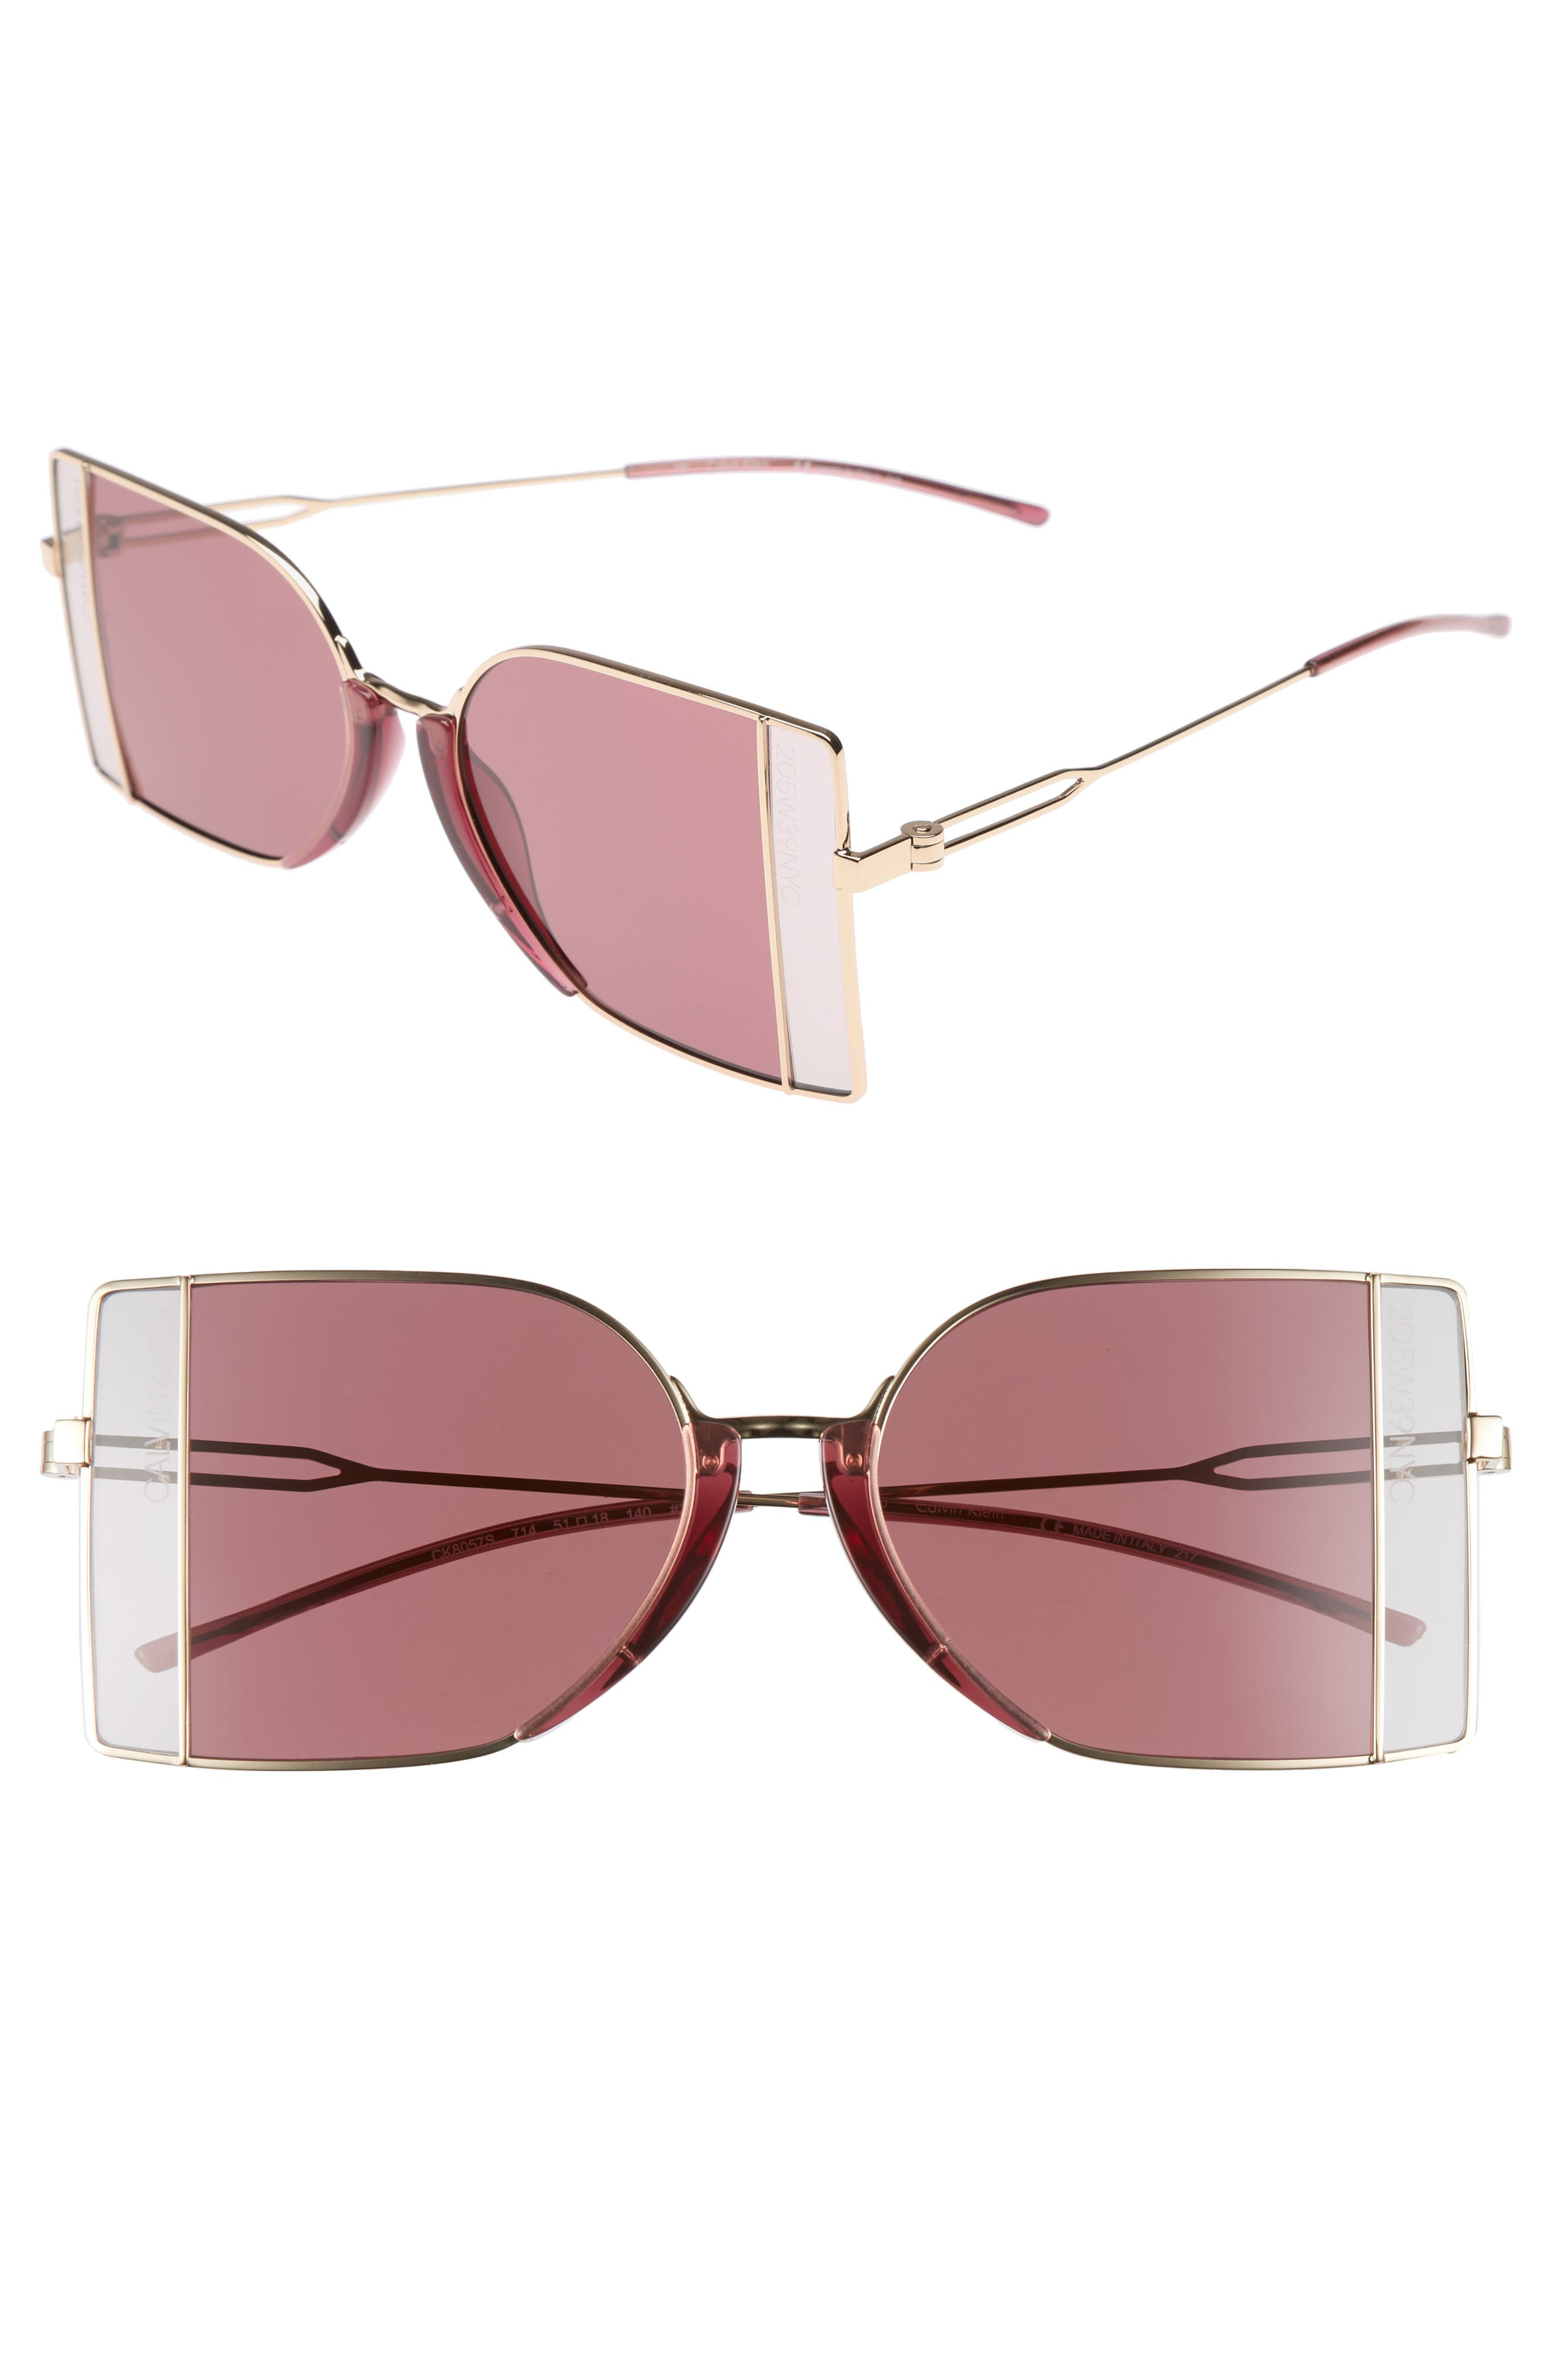 Main Image - CALVIN KLEIN 205W39NYC 51mm Butterfly Sunglasses